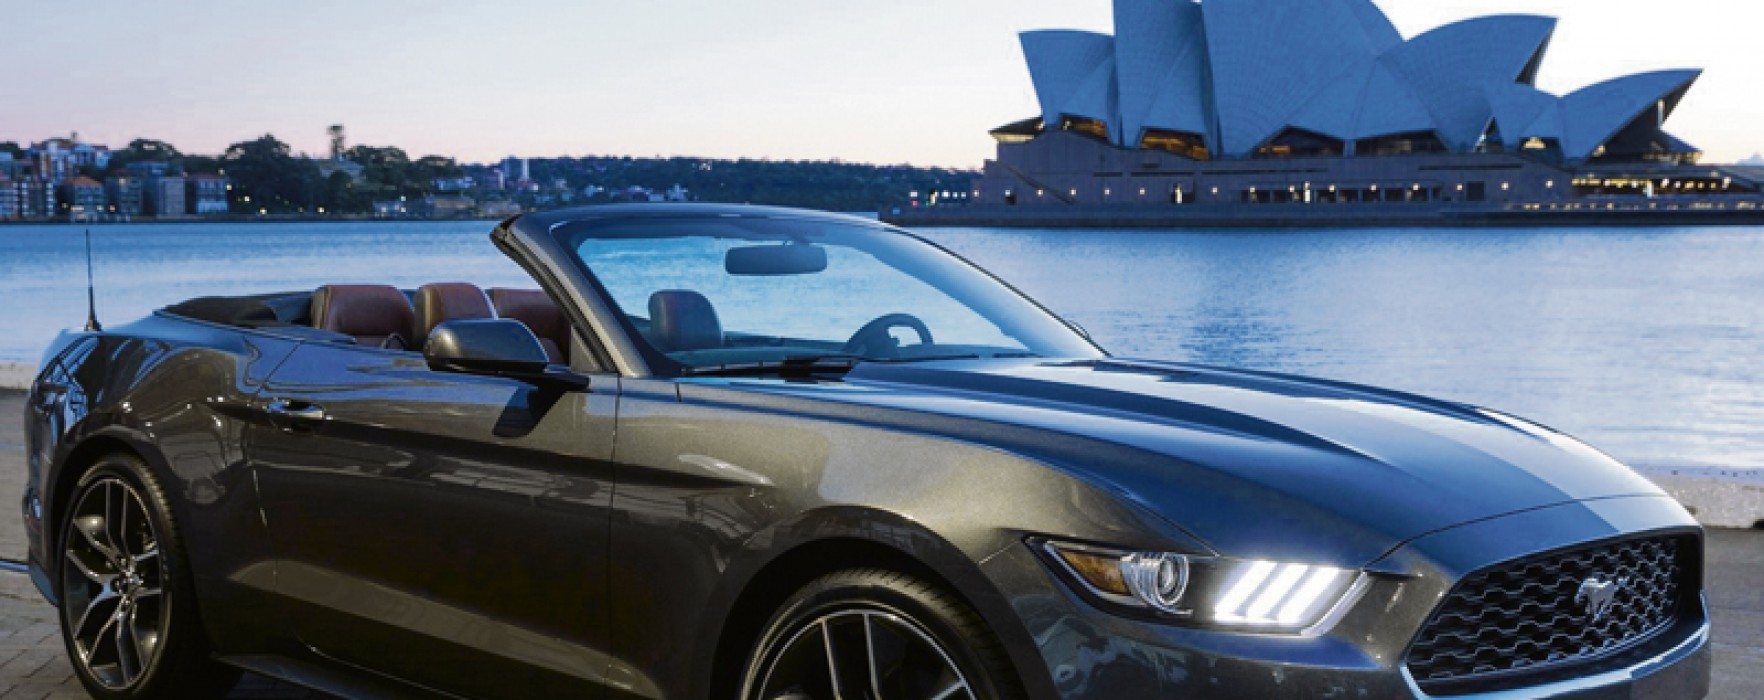 Mustang EcoBoost Convertible 2015 (46 149 $ + taxes)